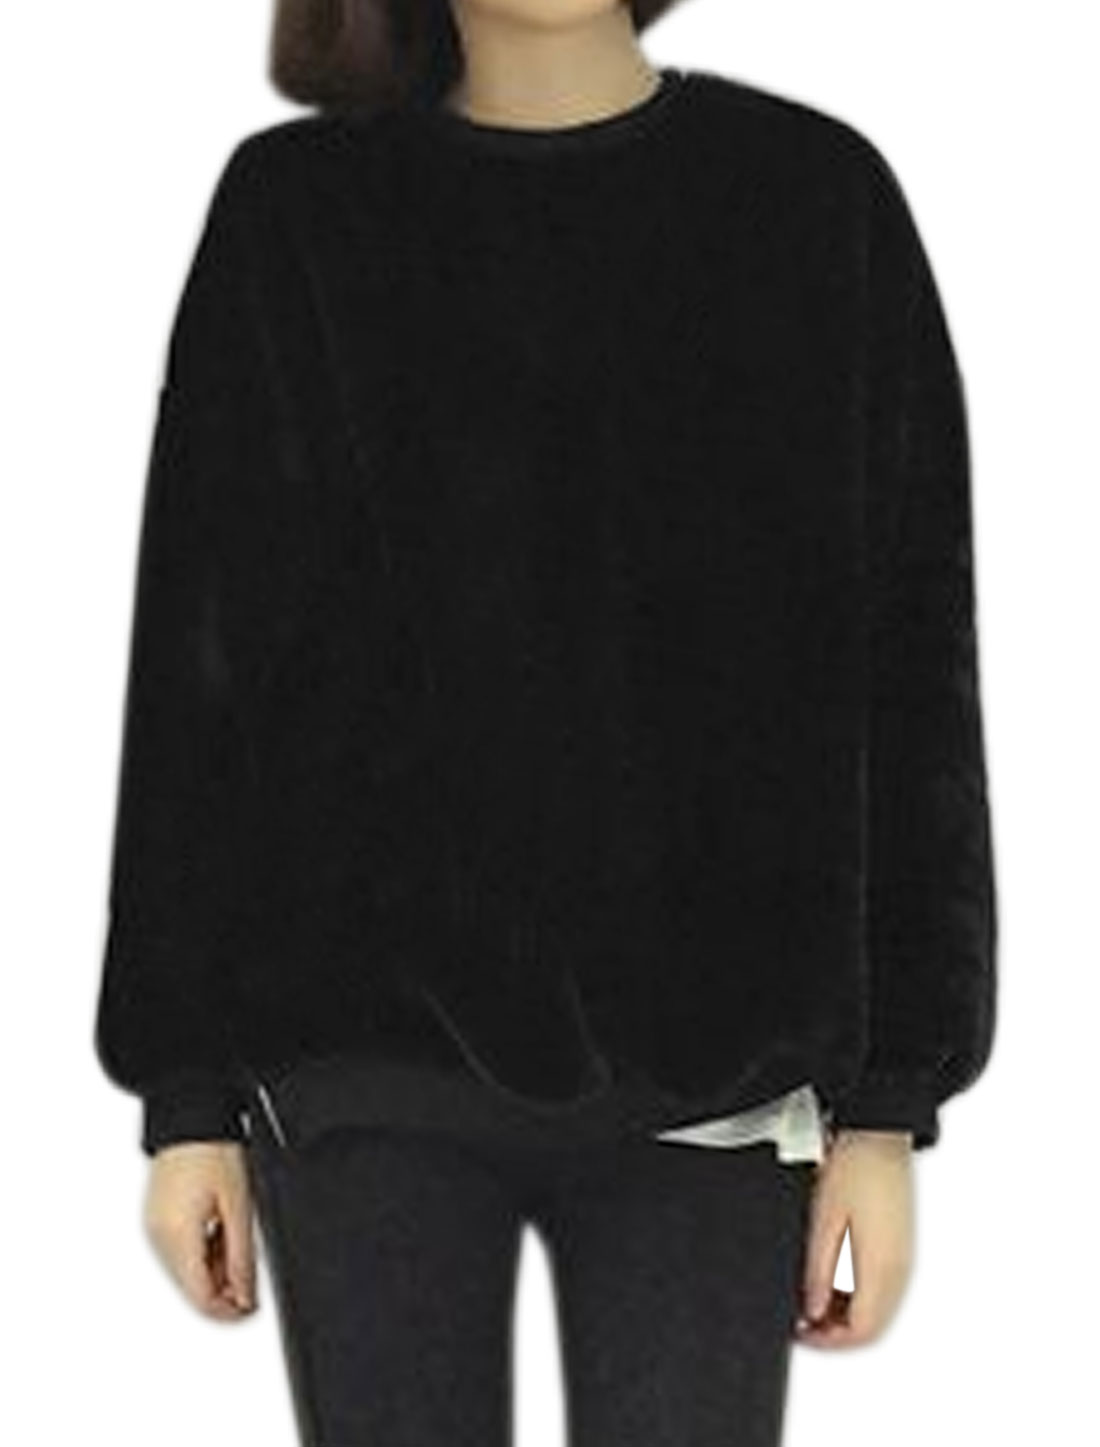 Ladies Zipper Side Loose Batwing Plush Sweatshirt Black XS